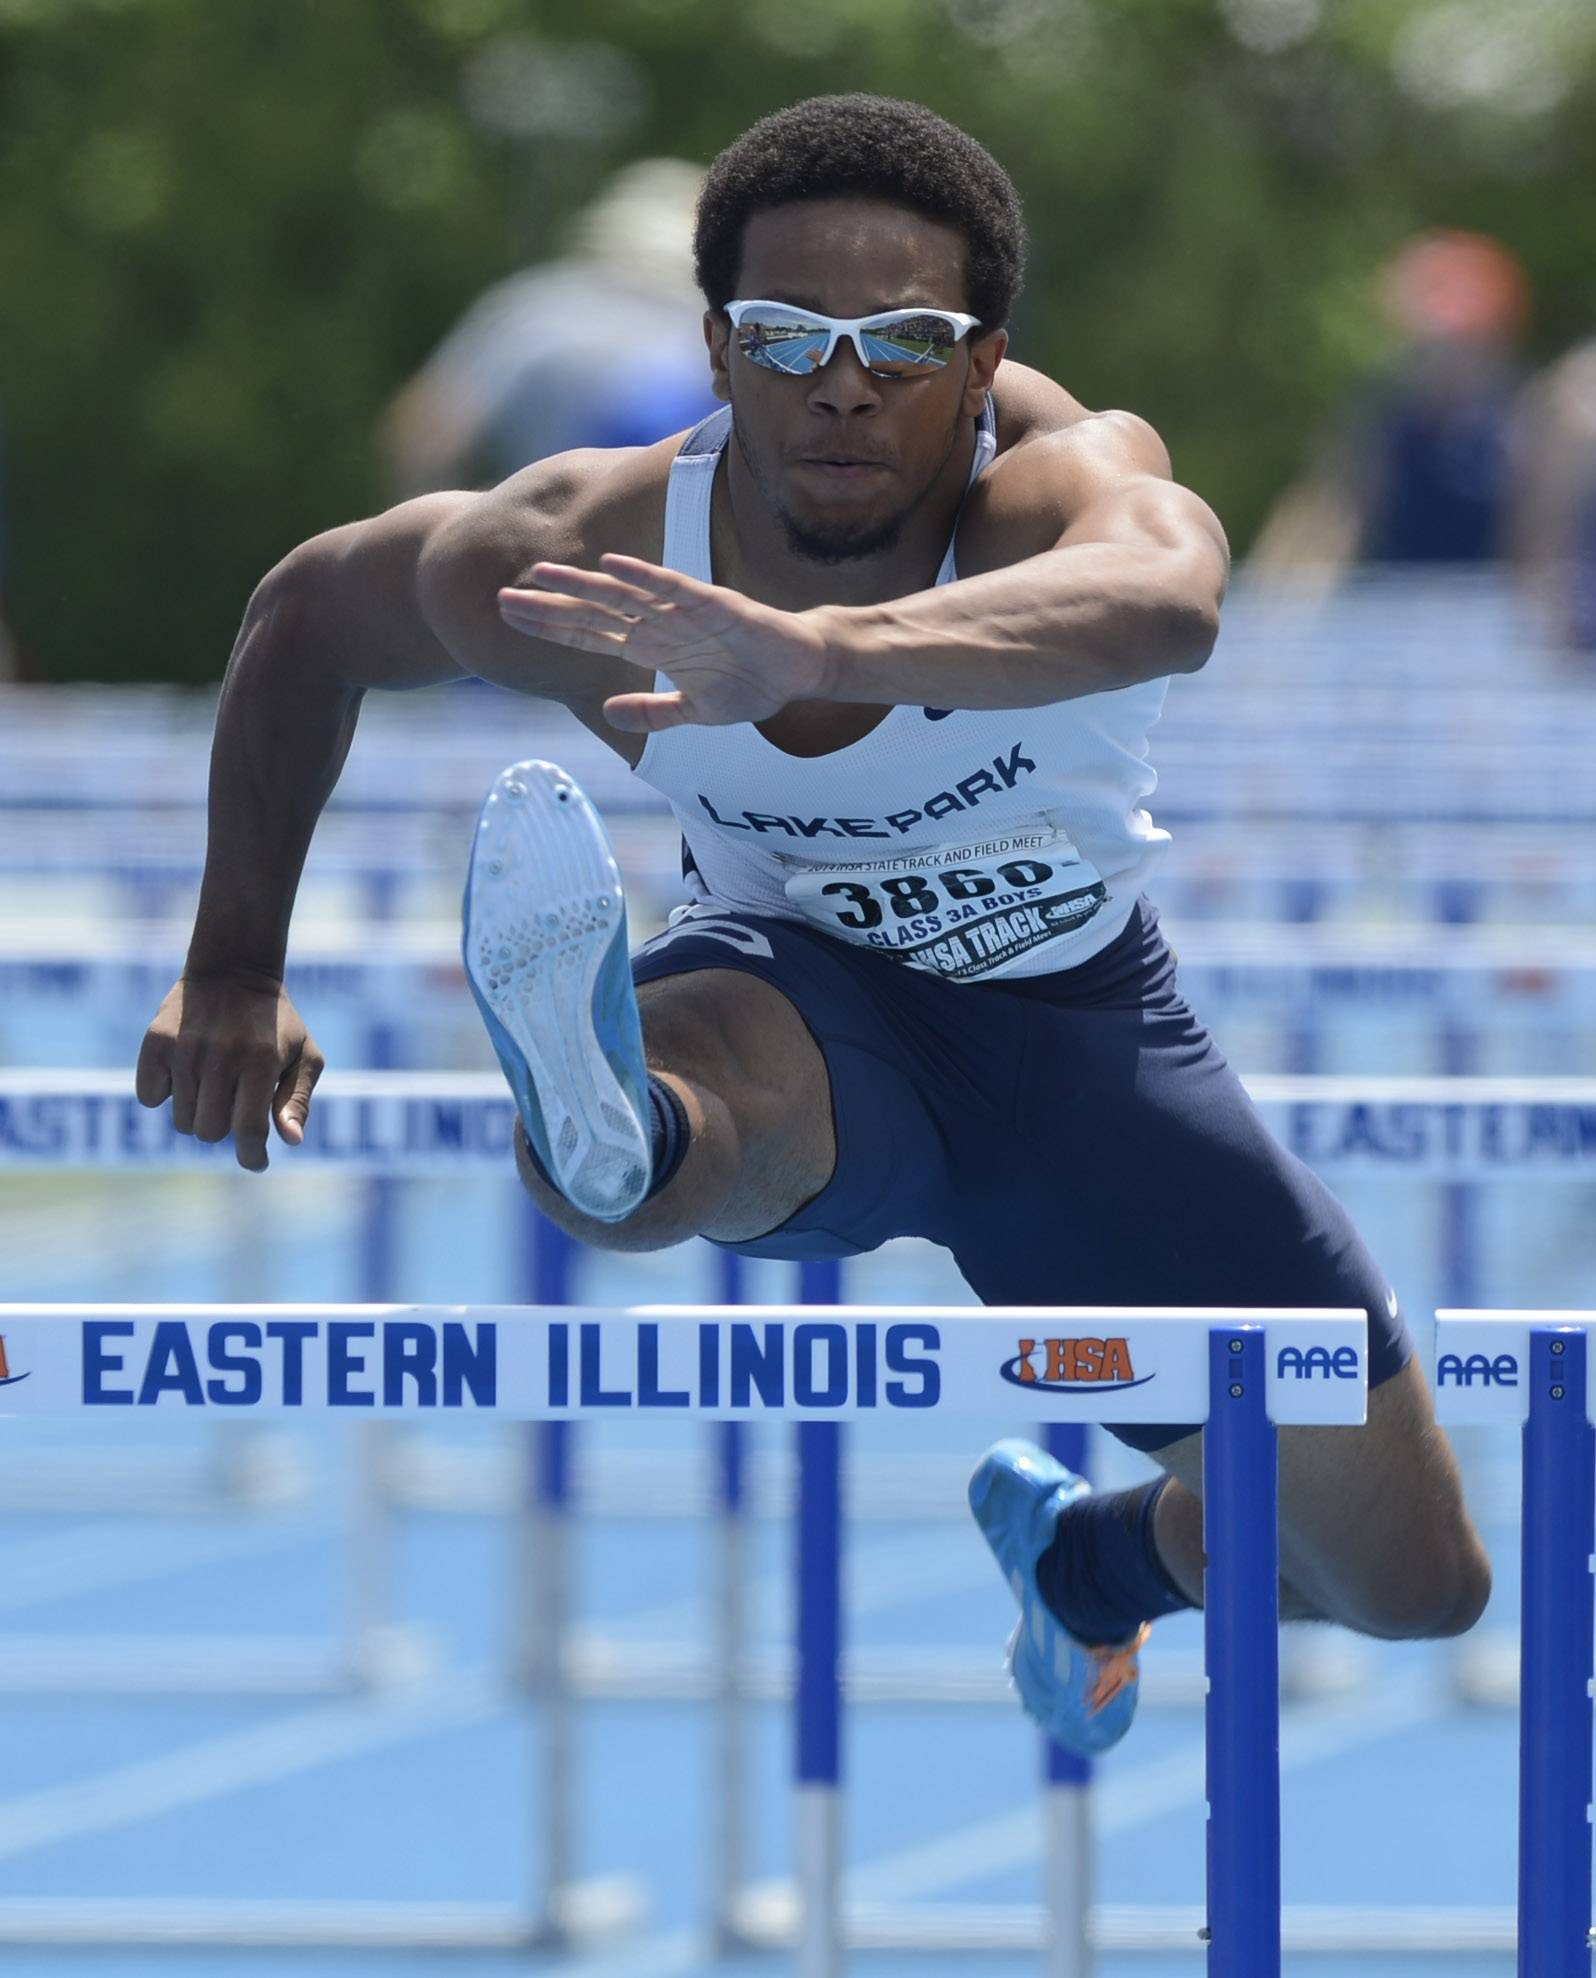 Lake Park's Antonio Shenault clears the final hurdle in the 110-meter high hurdles during the boys class 3A state track and field finals in Charleston Saturday.